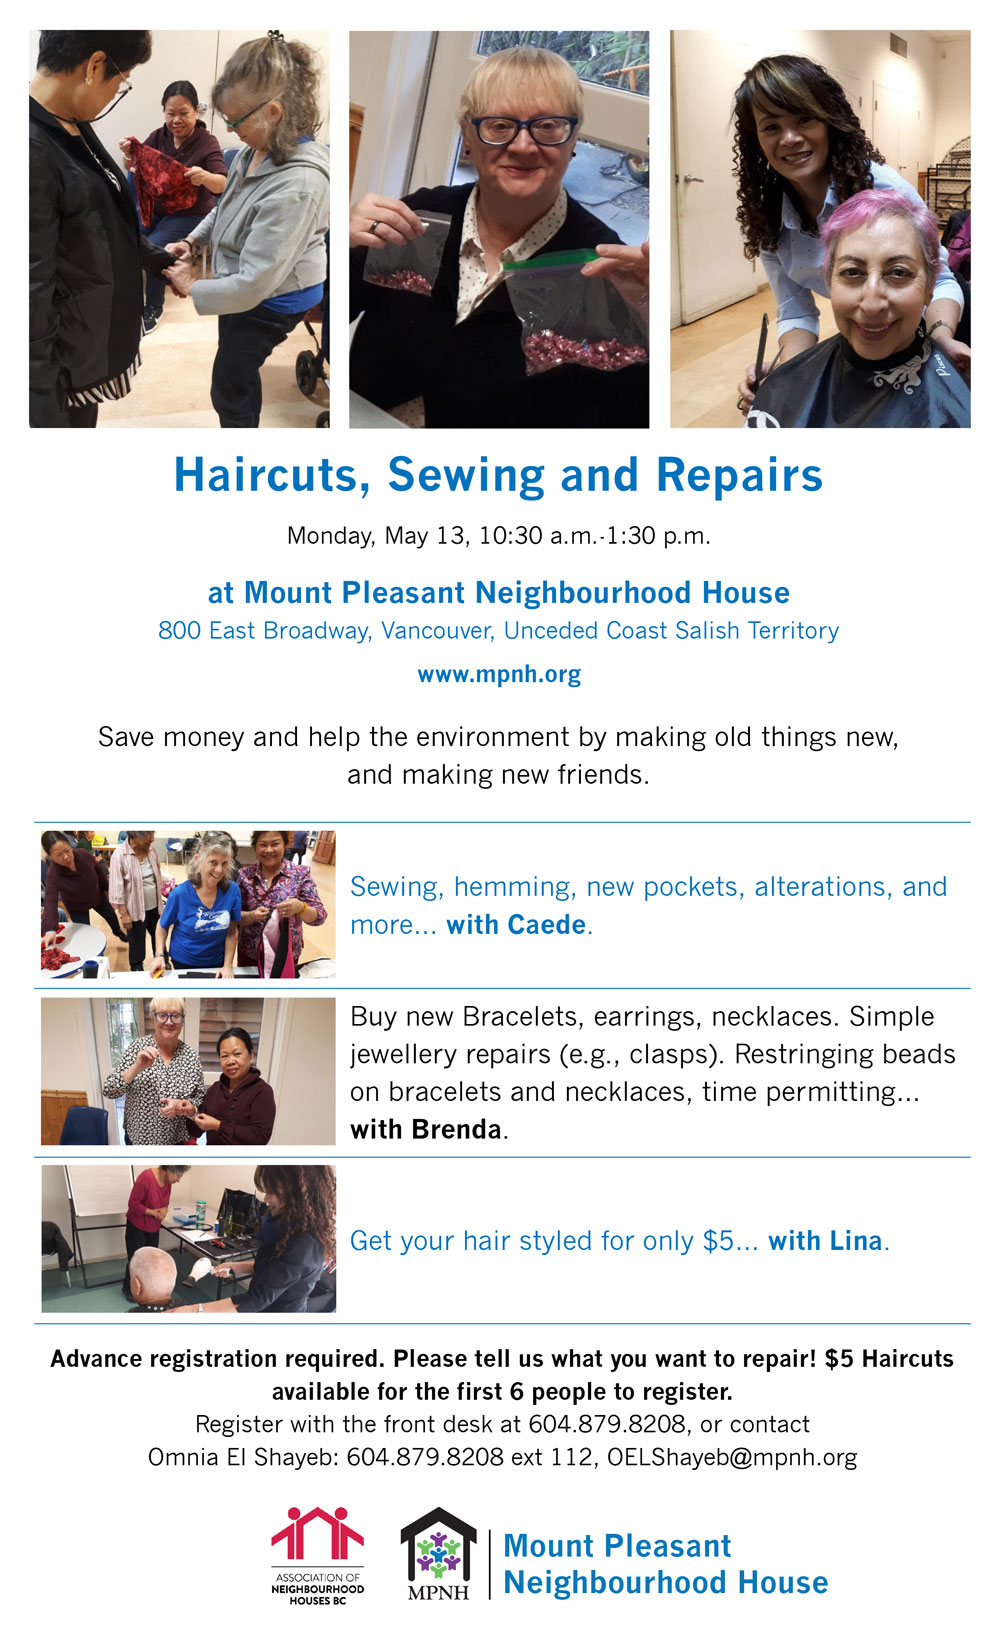 An image of the poster with event details, showing Caede doing sewing repairs, Brenda repairing jewellery, and Lina giving haircuts.